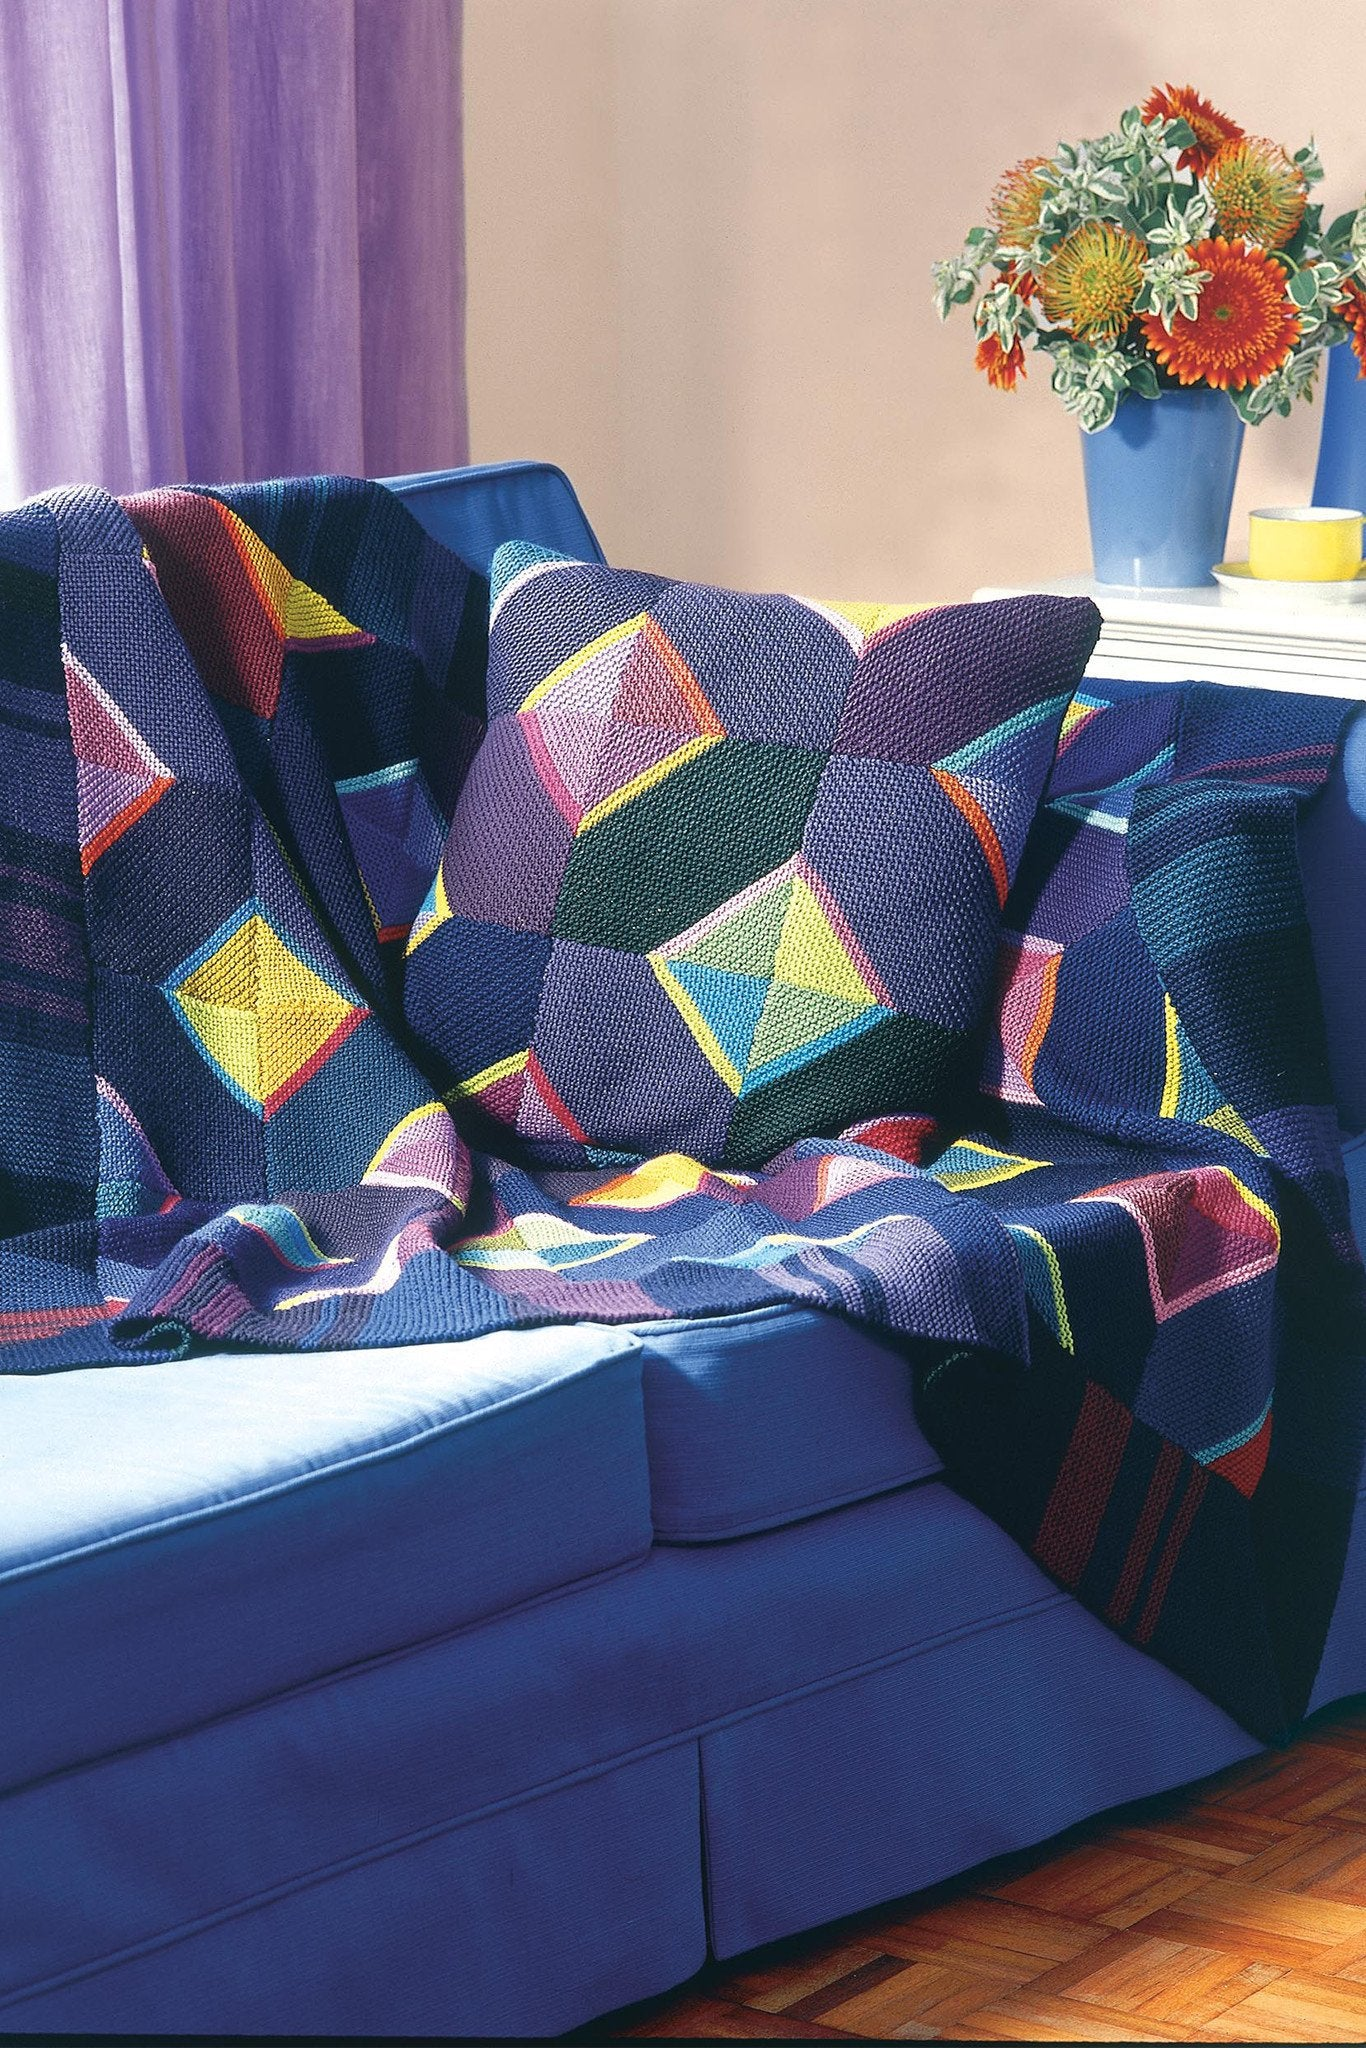 Patchwork Blanket And Cushion Geometric Knitting Patterns – The ...